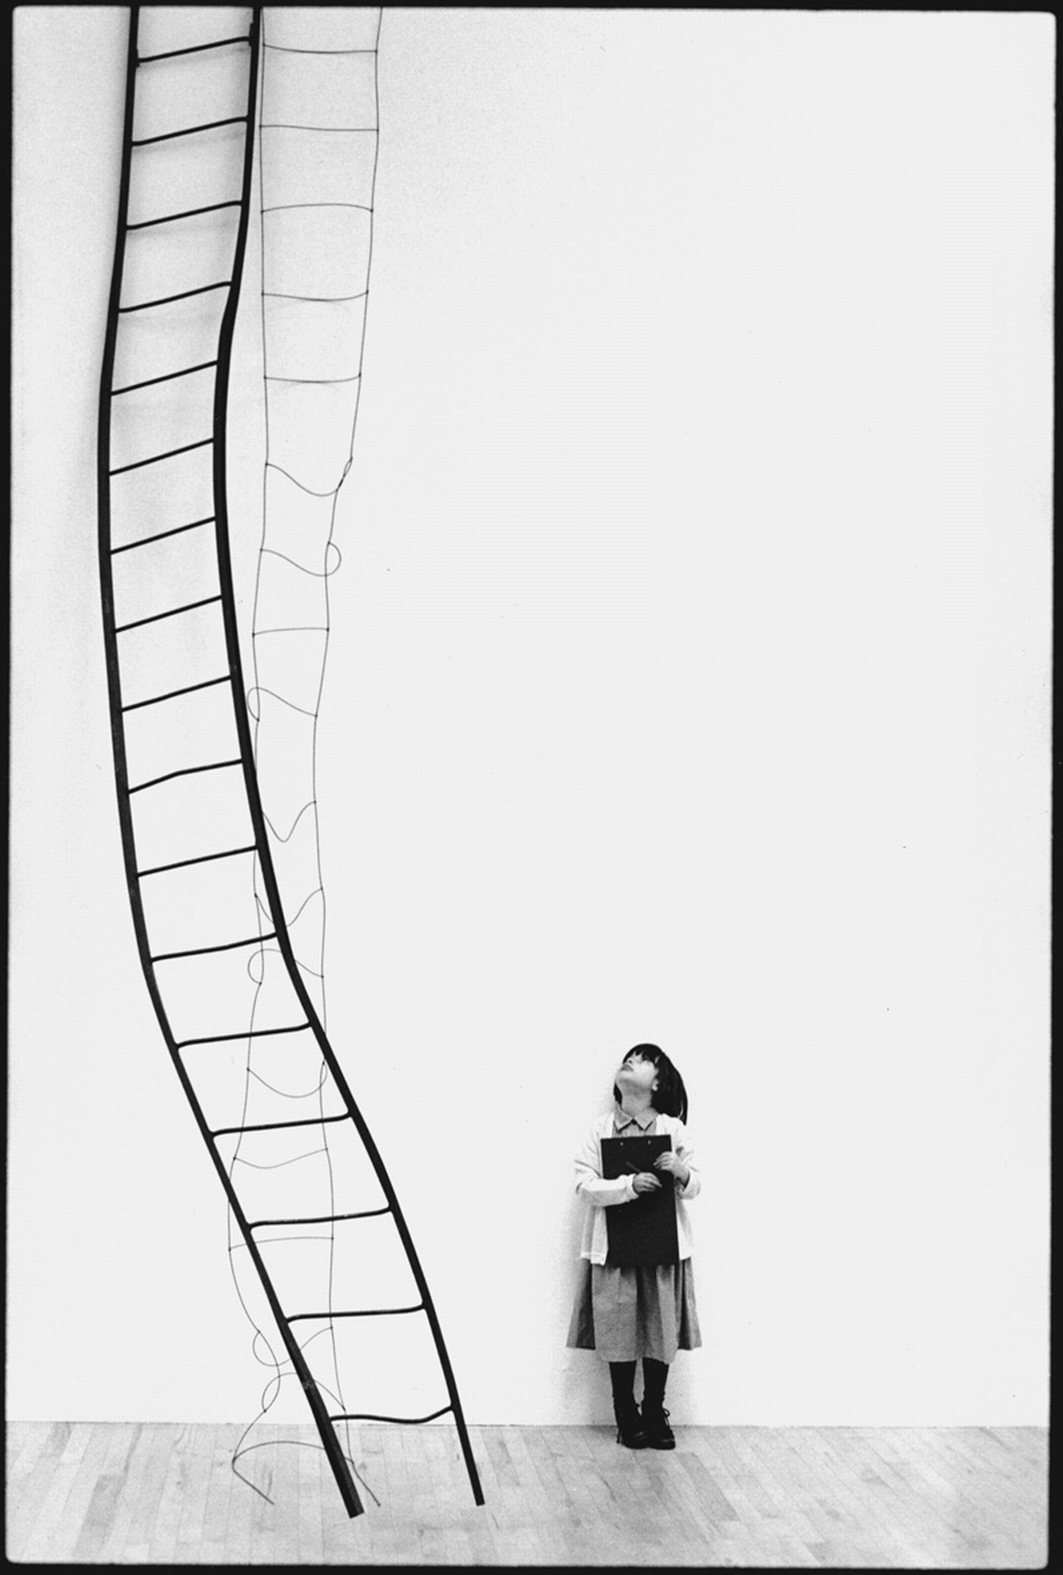 Siobhan and Ladder